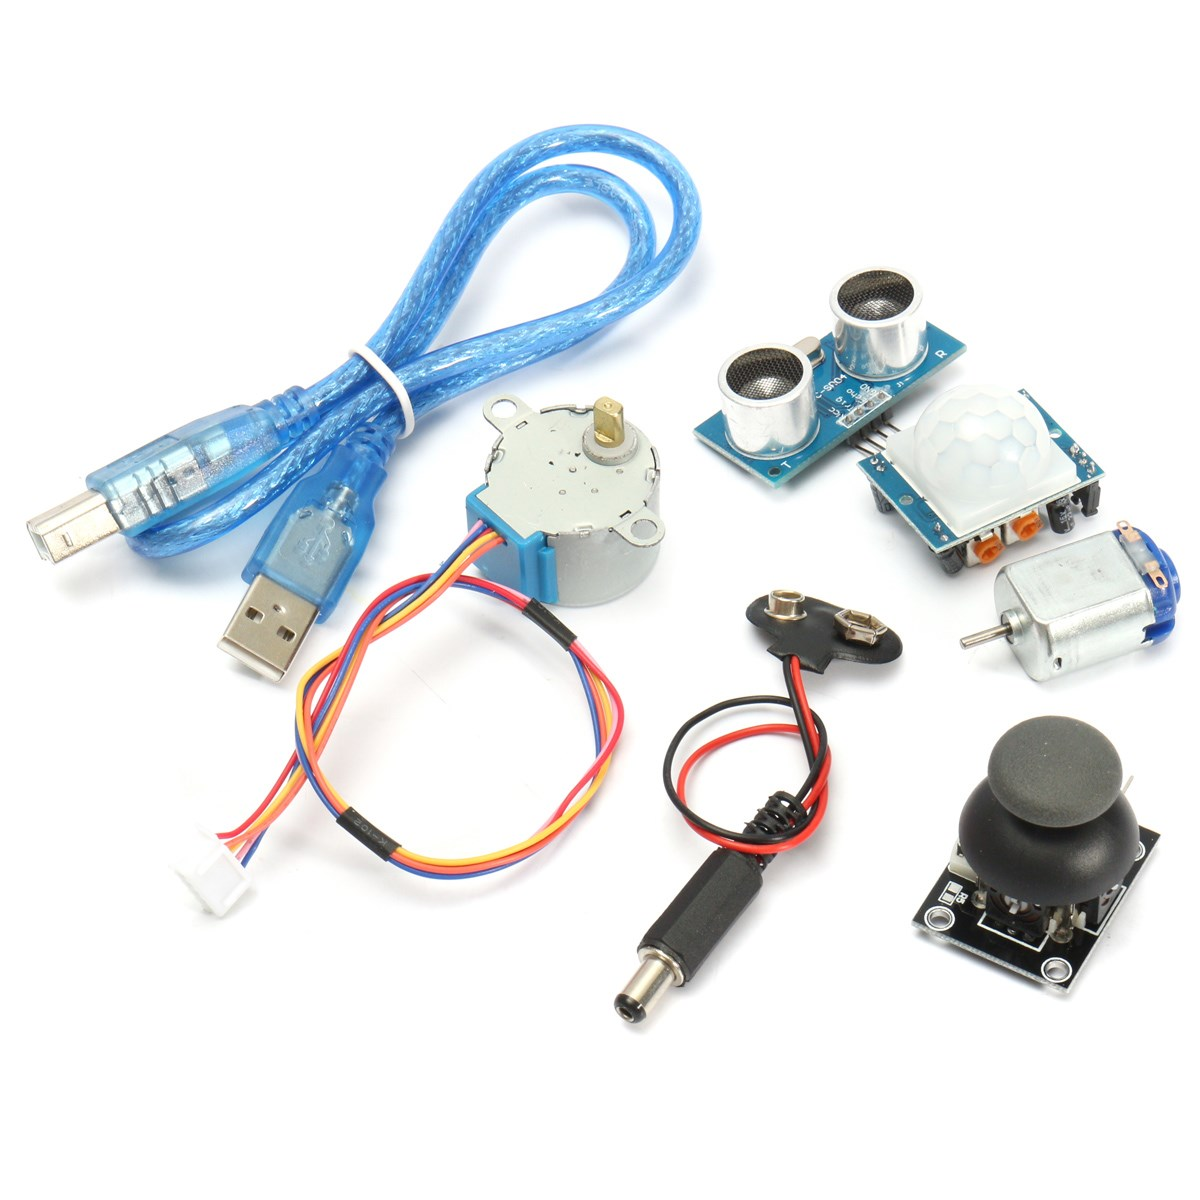 Image 4 - New DIY Electric Unit Ultimate Starter Kit for Arduino MEGA 2560 1602 LCD Servo Motor LED Relay RTC Electronic kit-in Electronics Stocks from Electronic Components & Supplies